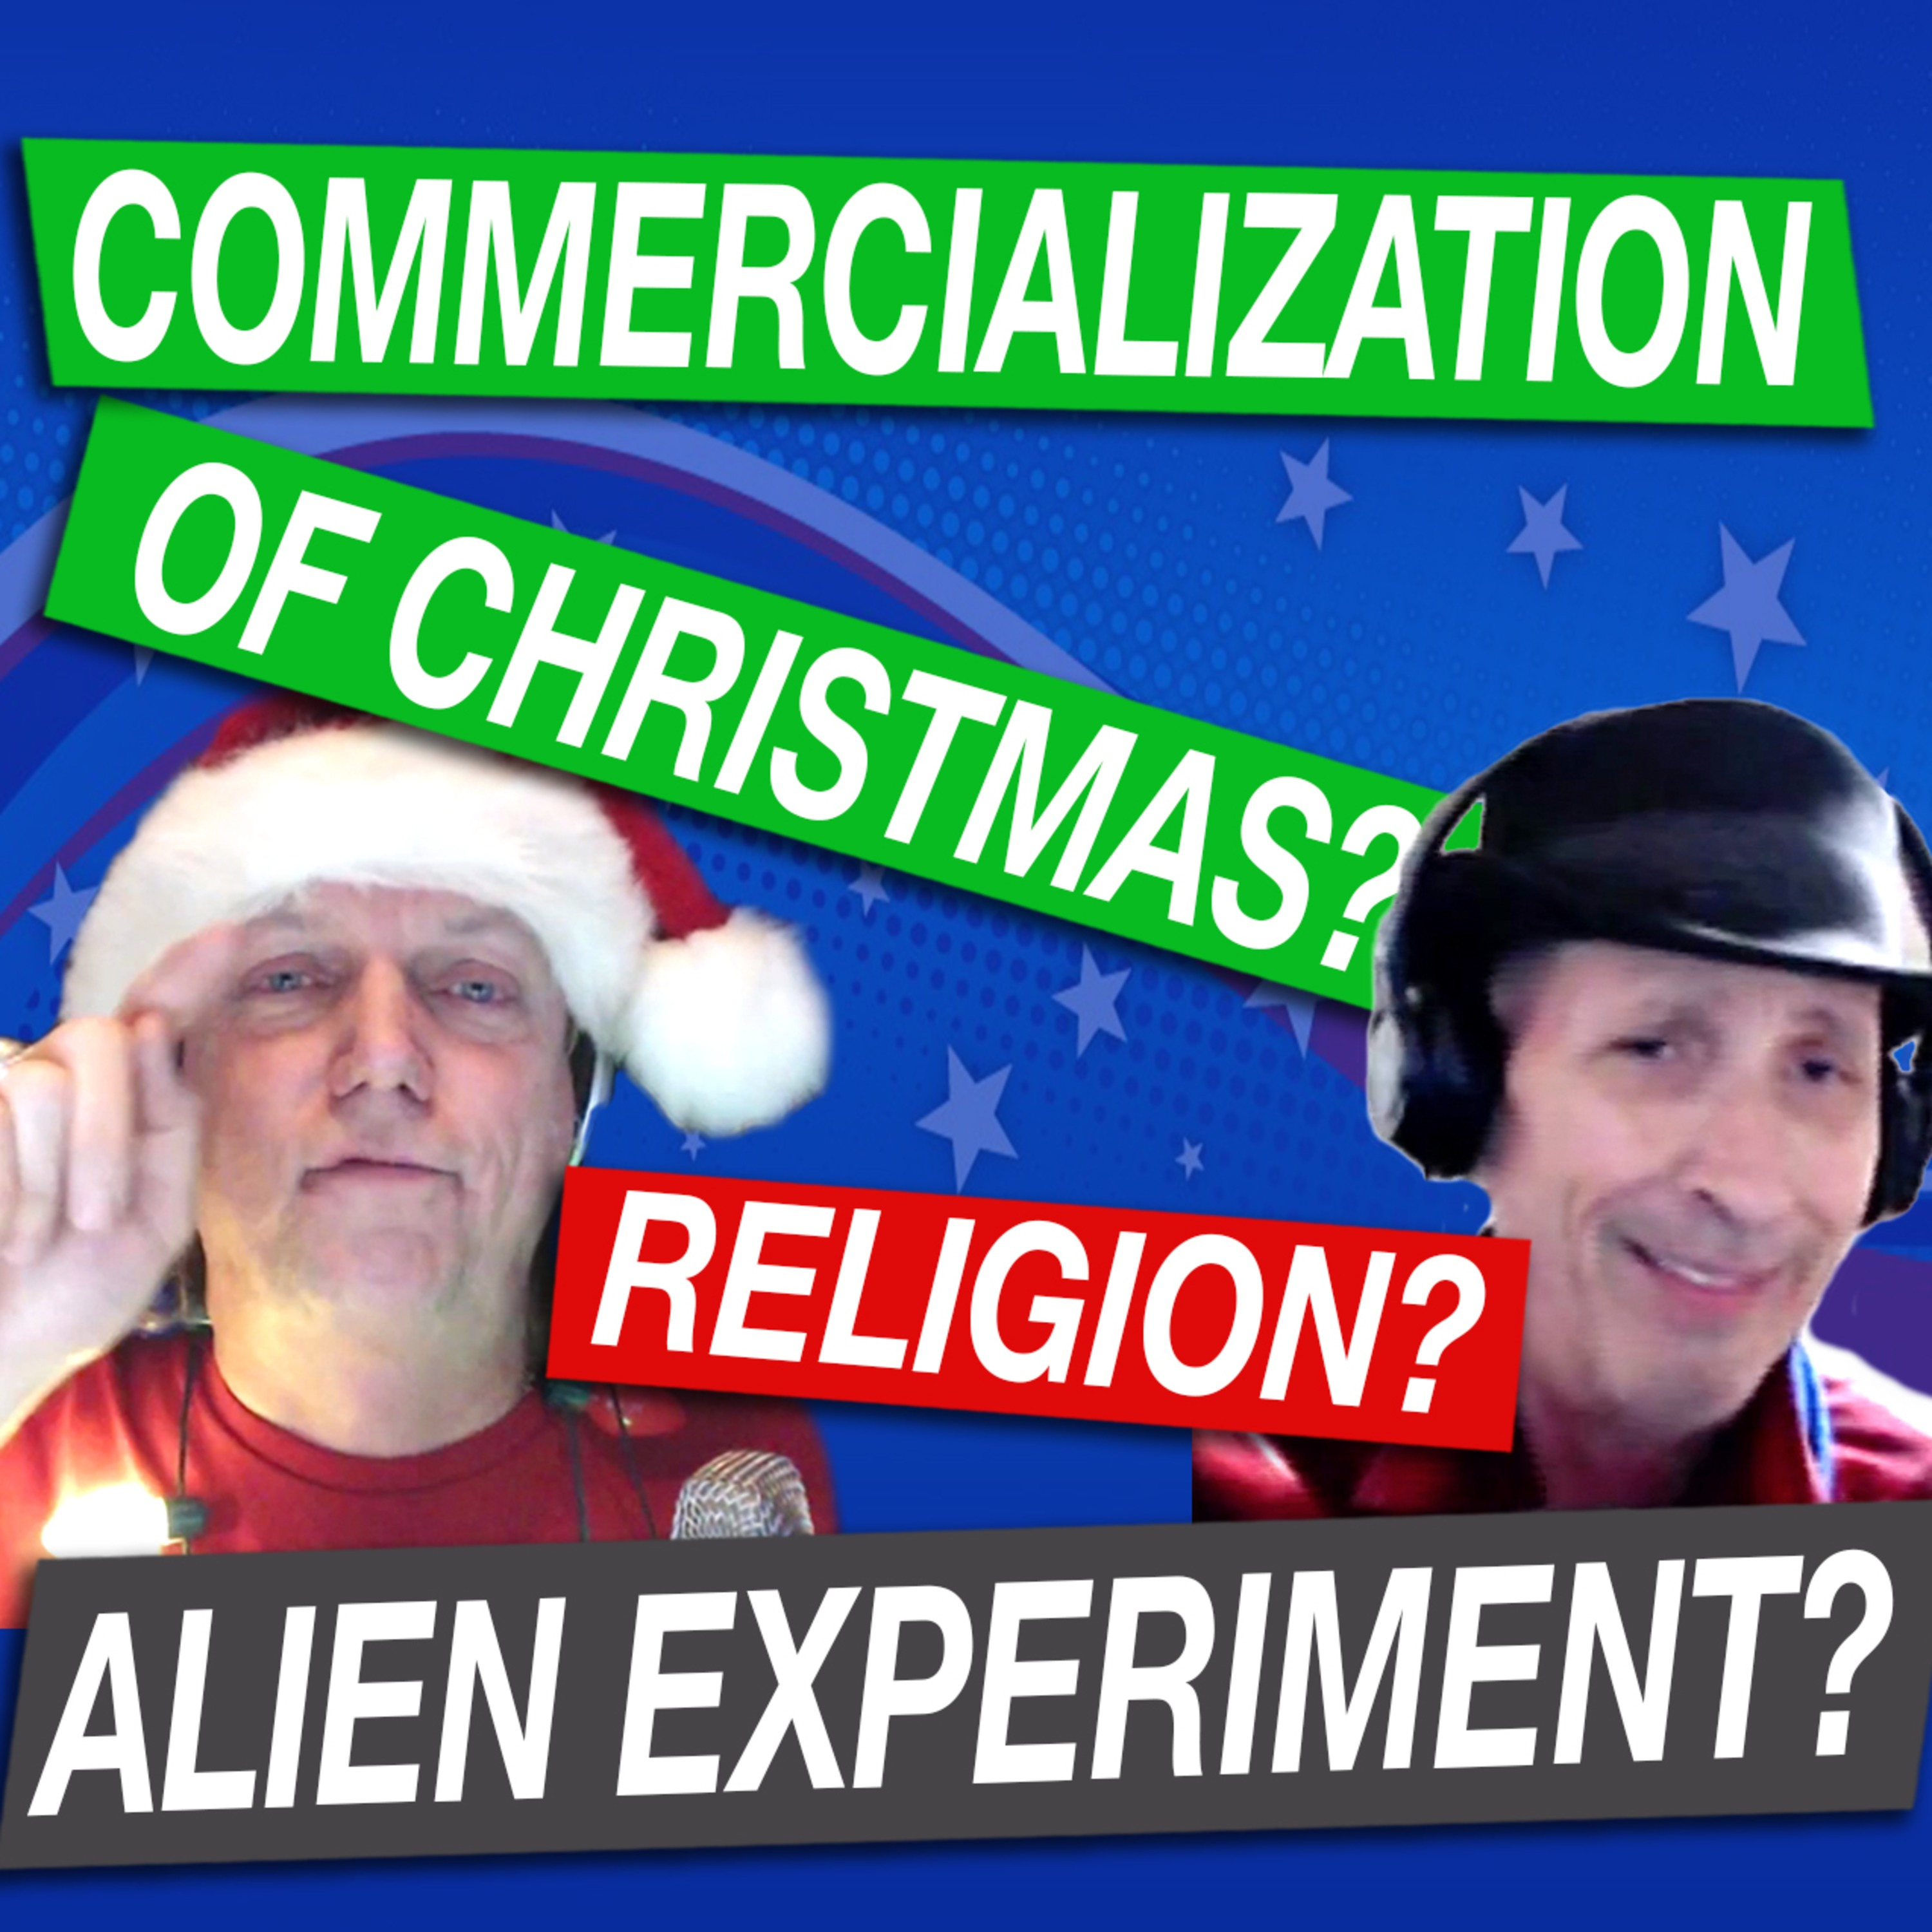 Has Christmas Become Too Commercialized?